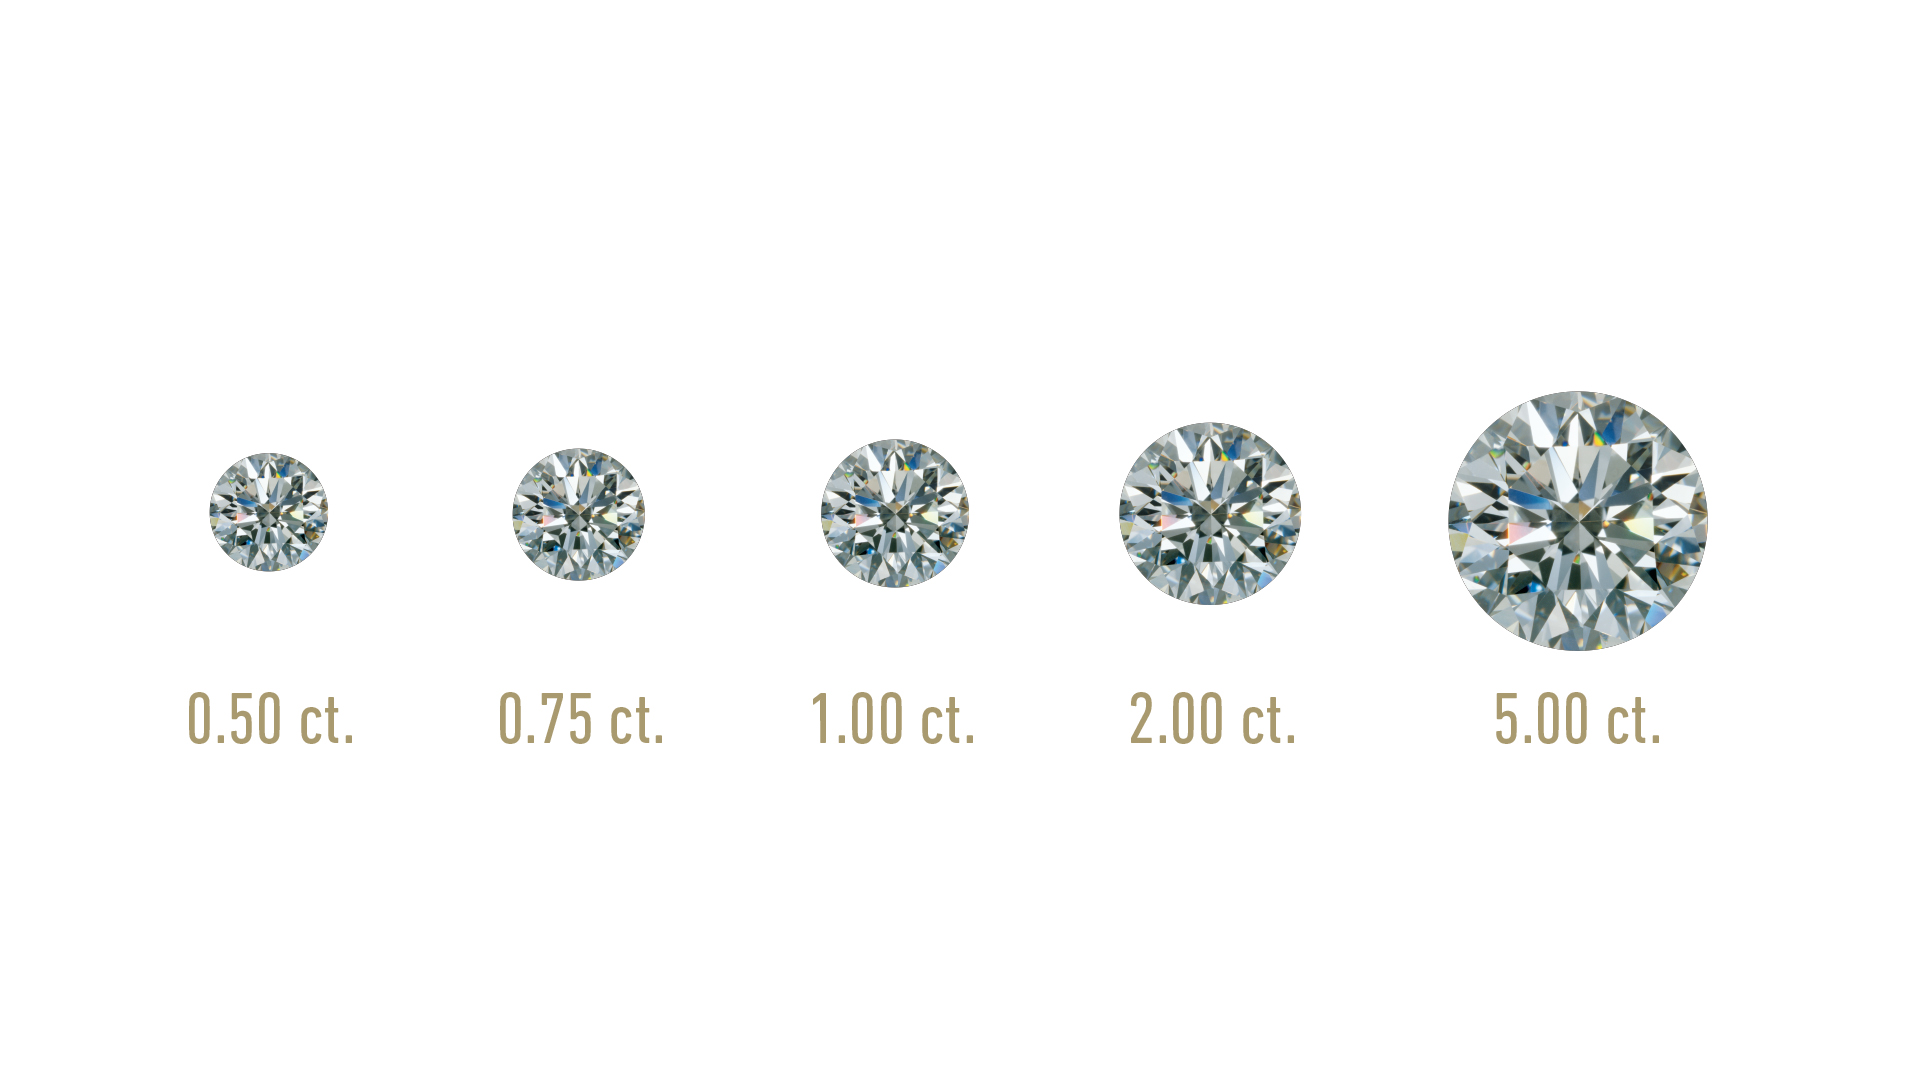 carat hero jewelry weight an be expert diamond s aebischer expertise